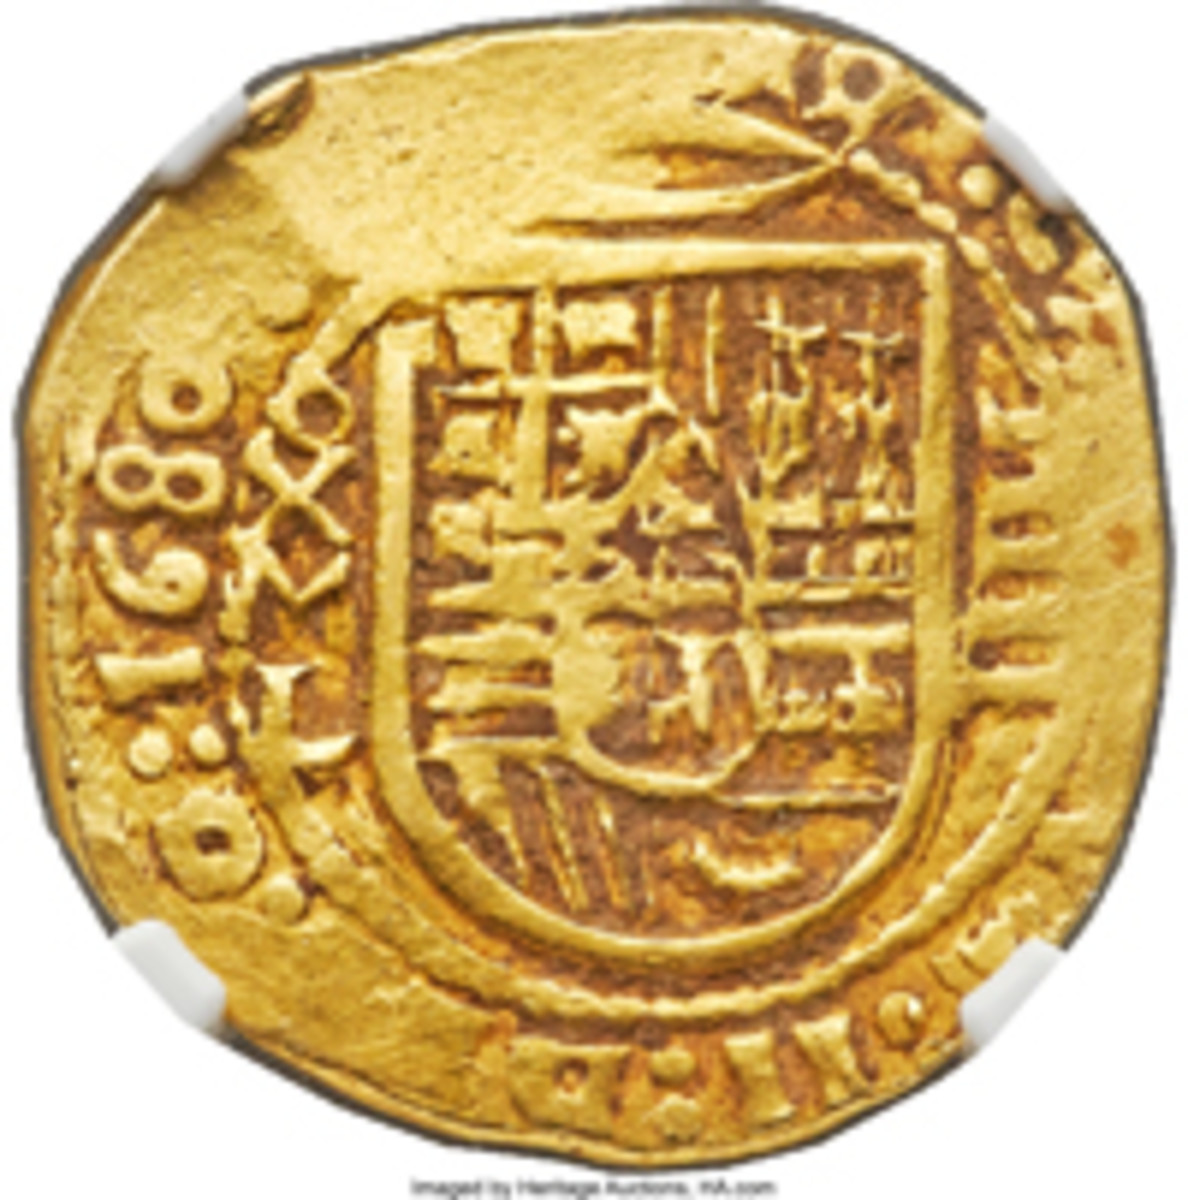 Earliest known 4 escudos of Mexico: Charles II gold cob of 1680, MXo-L, KM-54. In VF-30 NGC, it sold for $84,000. (Image courtesy and © www.ha.com.)